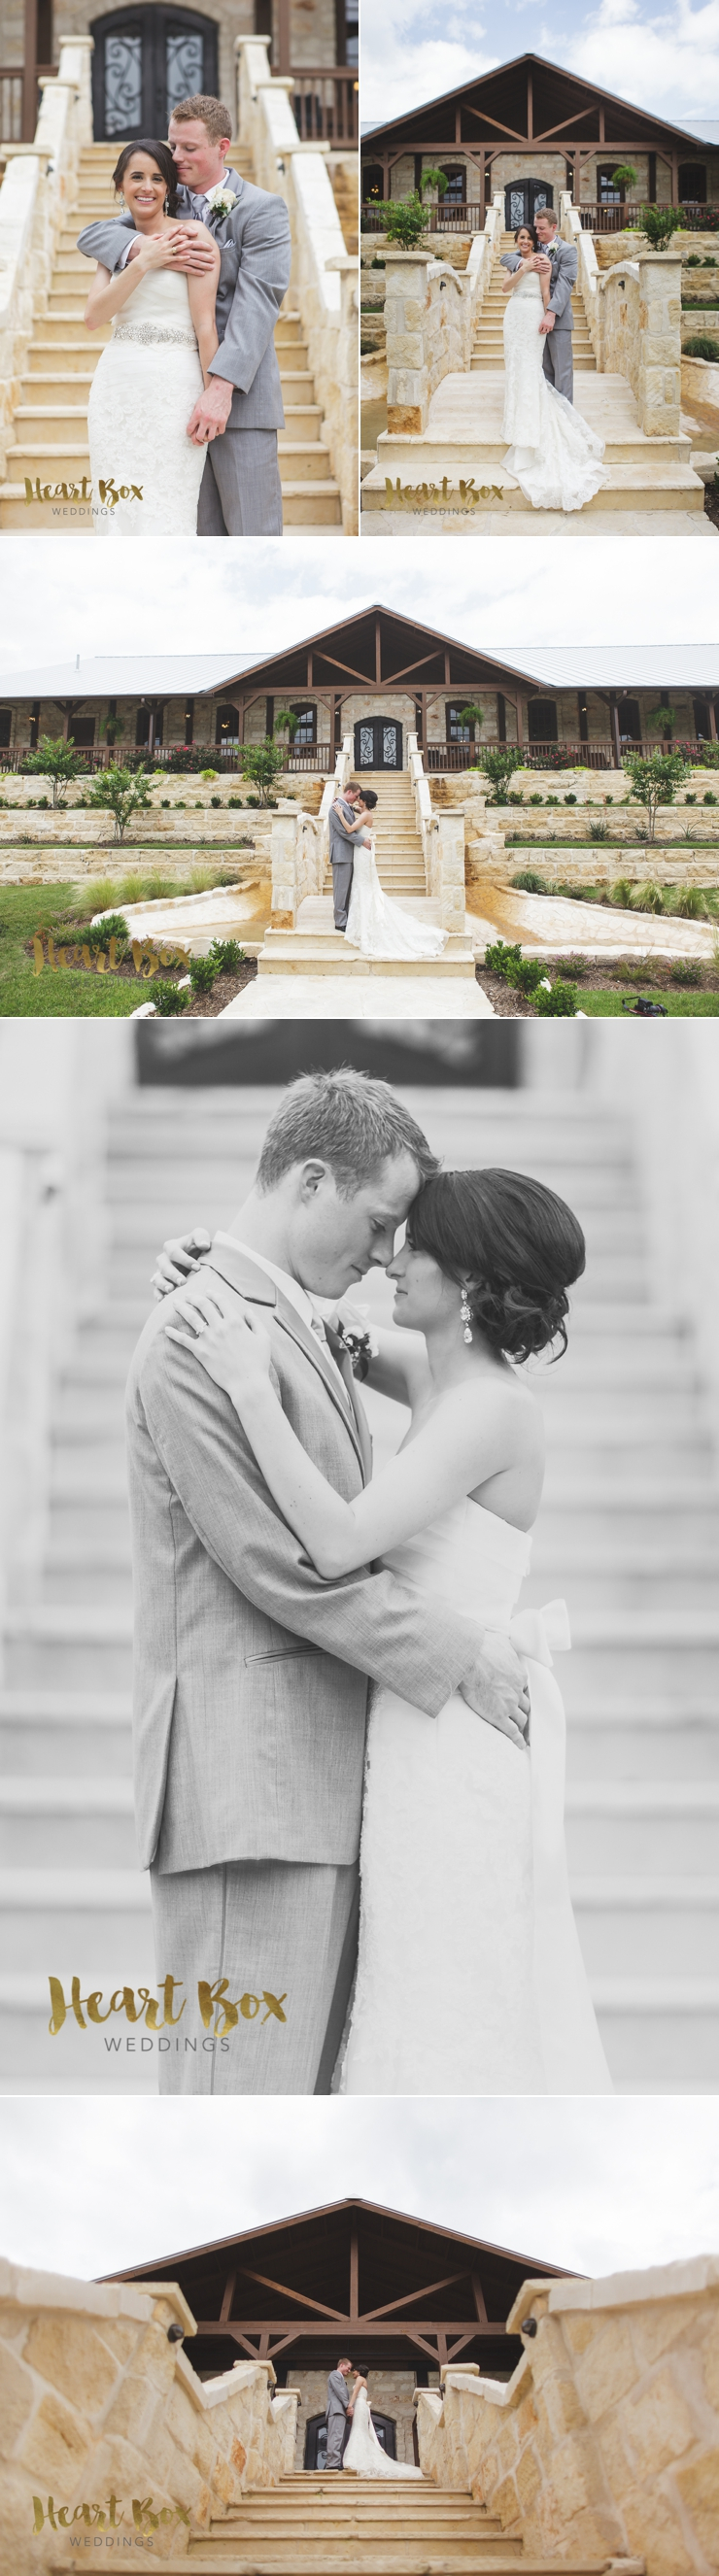 Slack Wedding Blog Collages 6.jpg